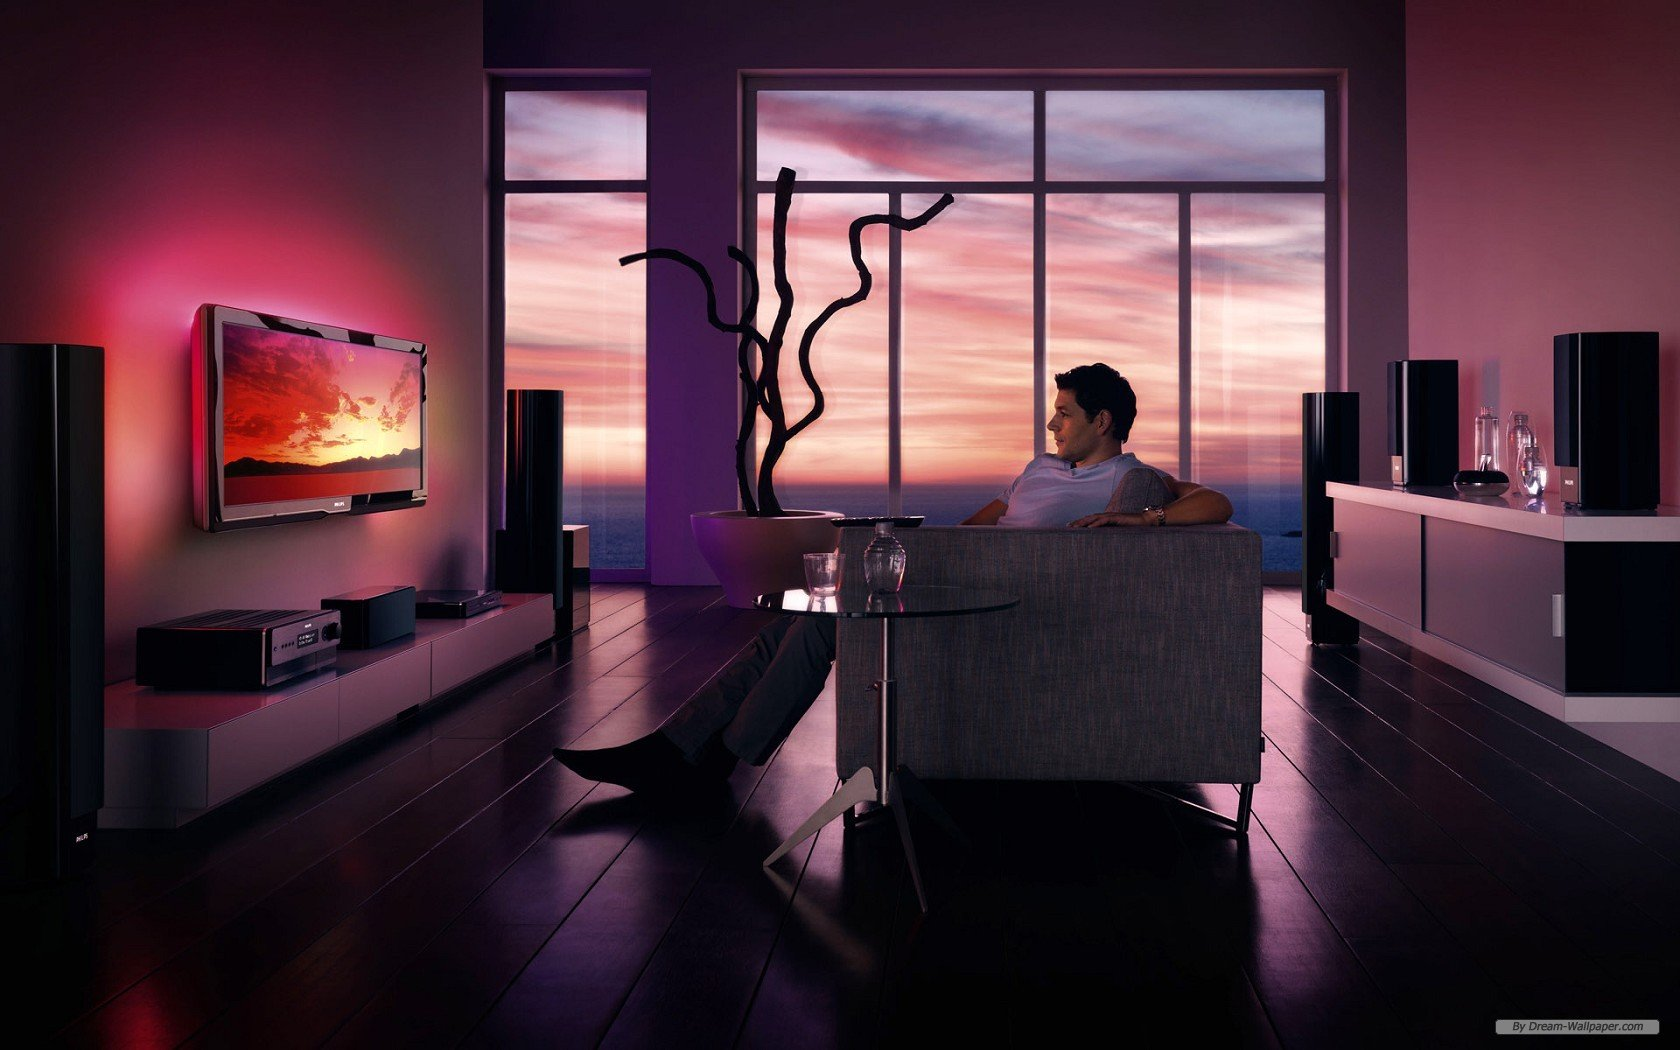 ... Wallpaper - Free Photography wallpaper - Home Theater wallpaper